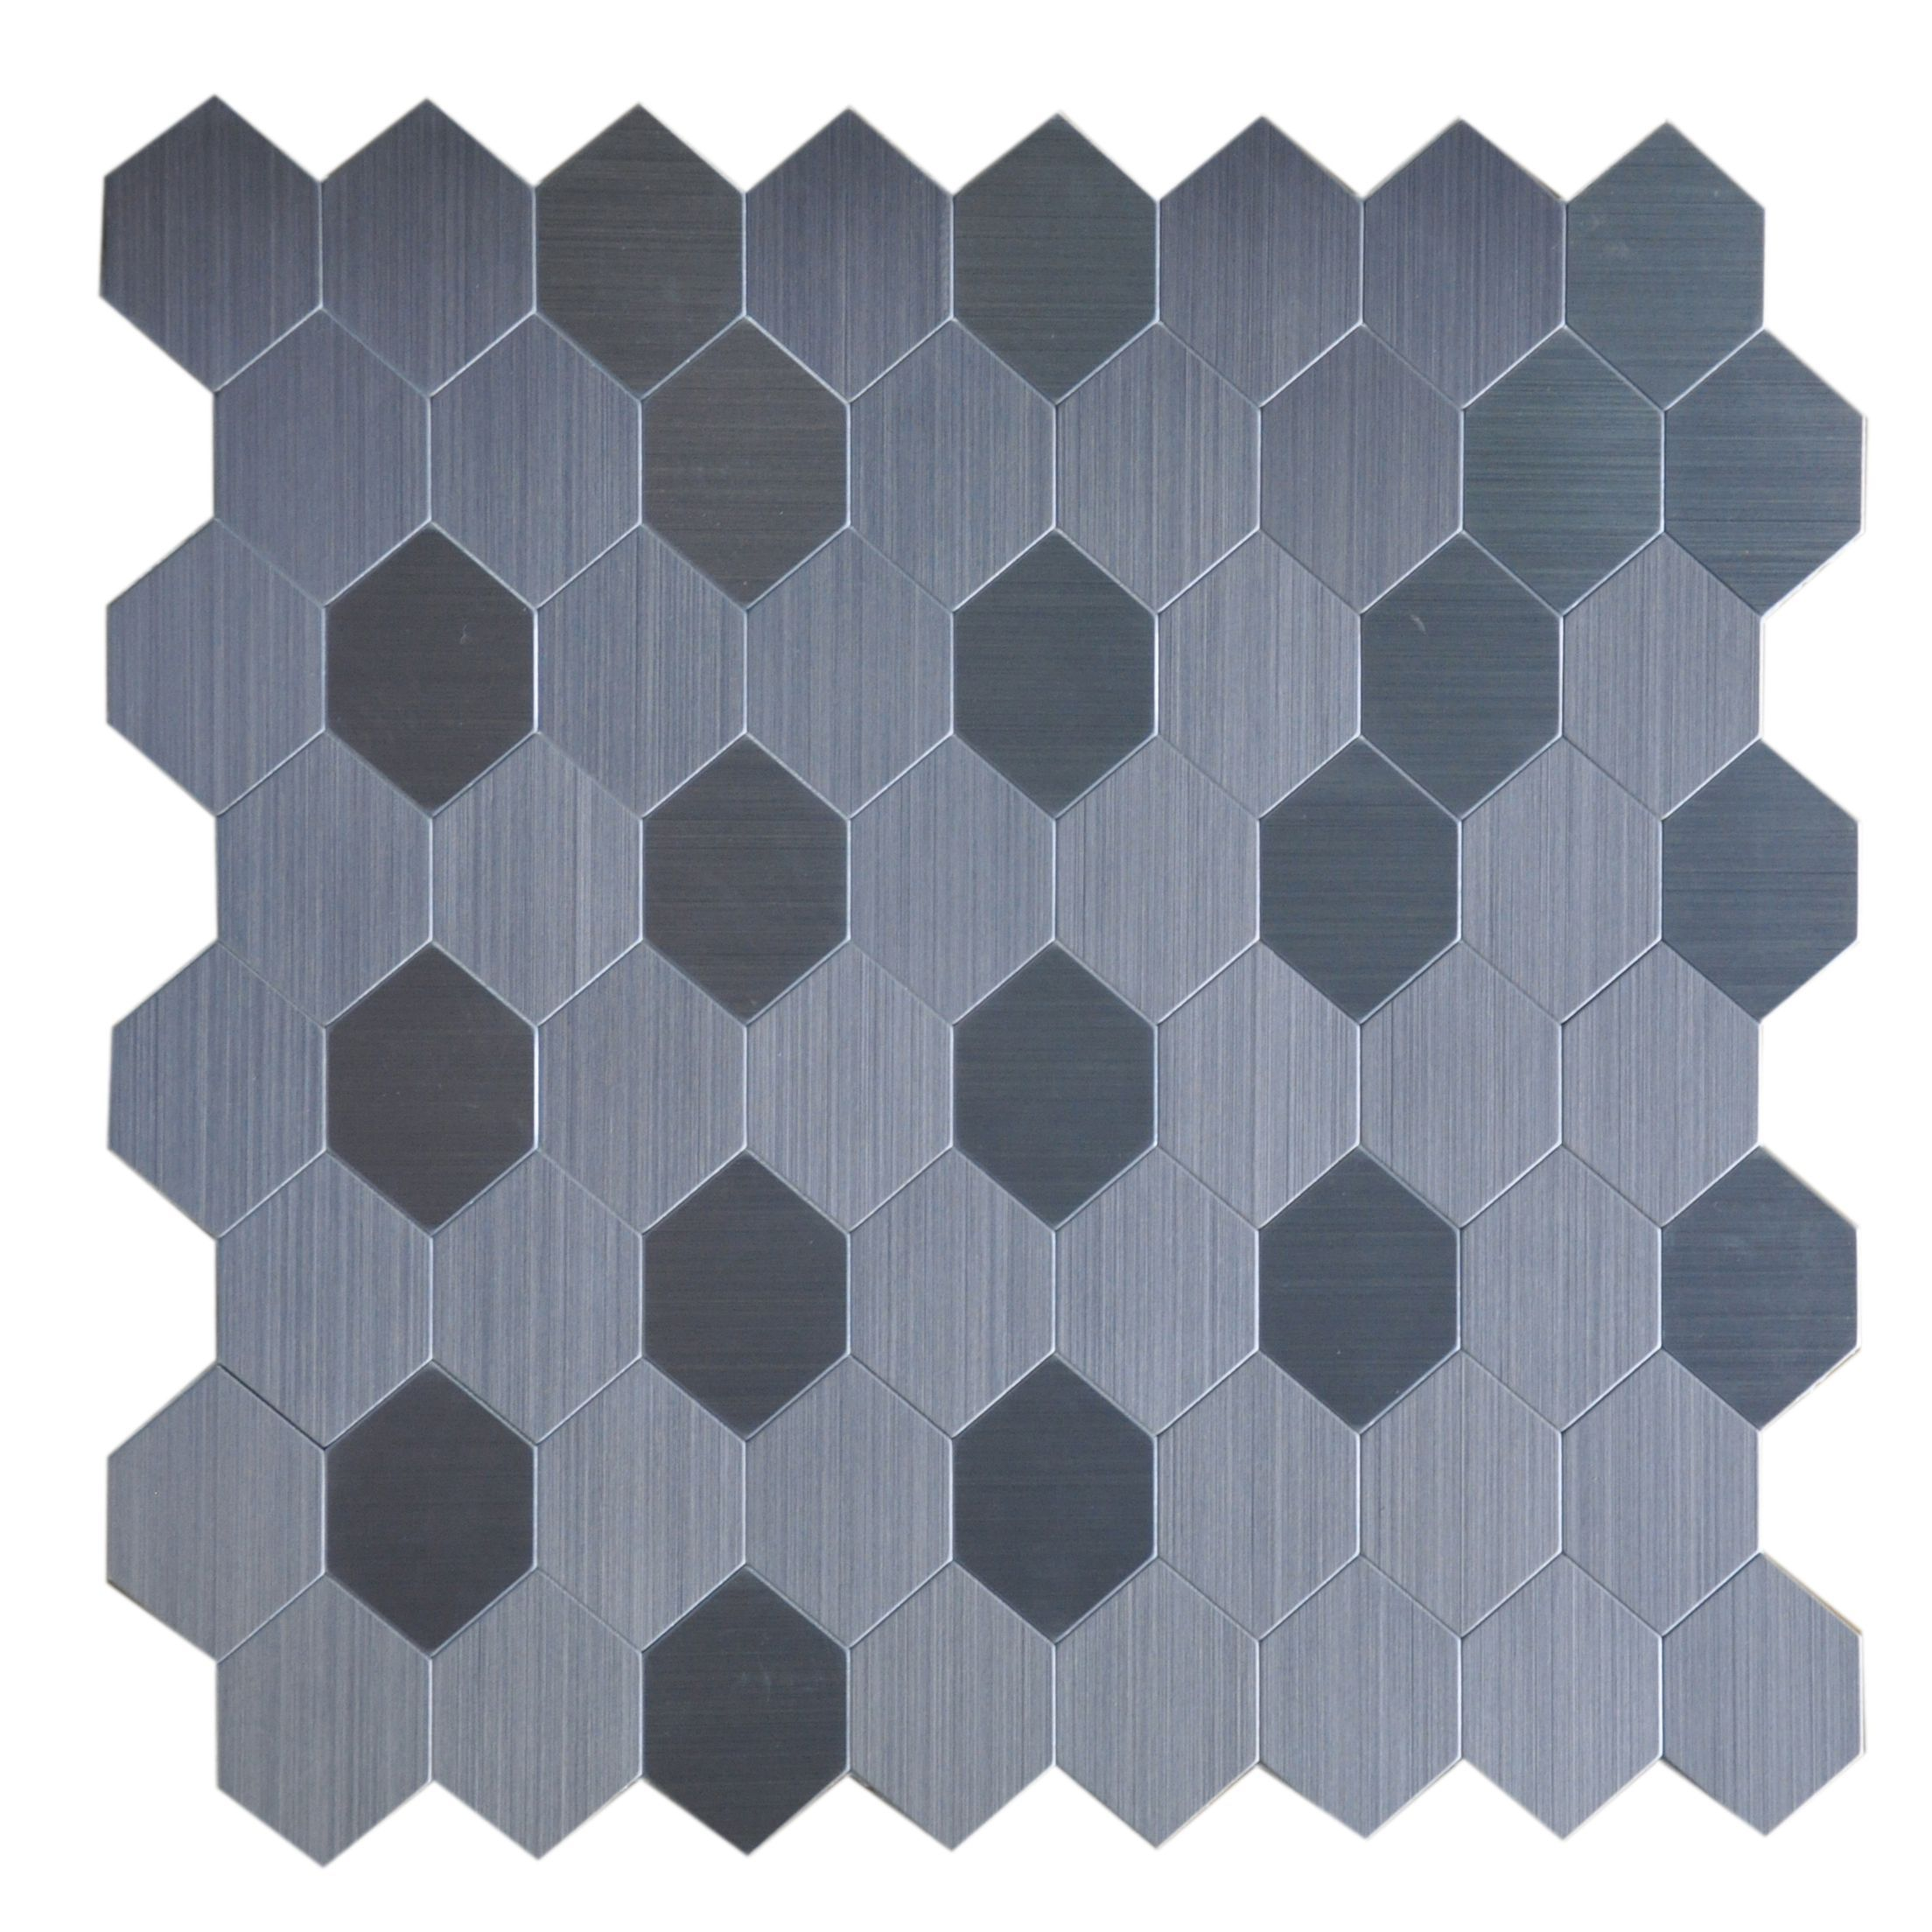 Instant Mosaic 12 Inch Hexagon Peel And Stick Natural Metal Tile 6 Square Feet Metallic Wall Tiles Mosaic Tiles Mosaic Wall Tiles